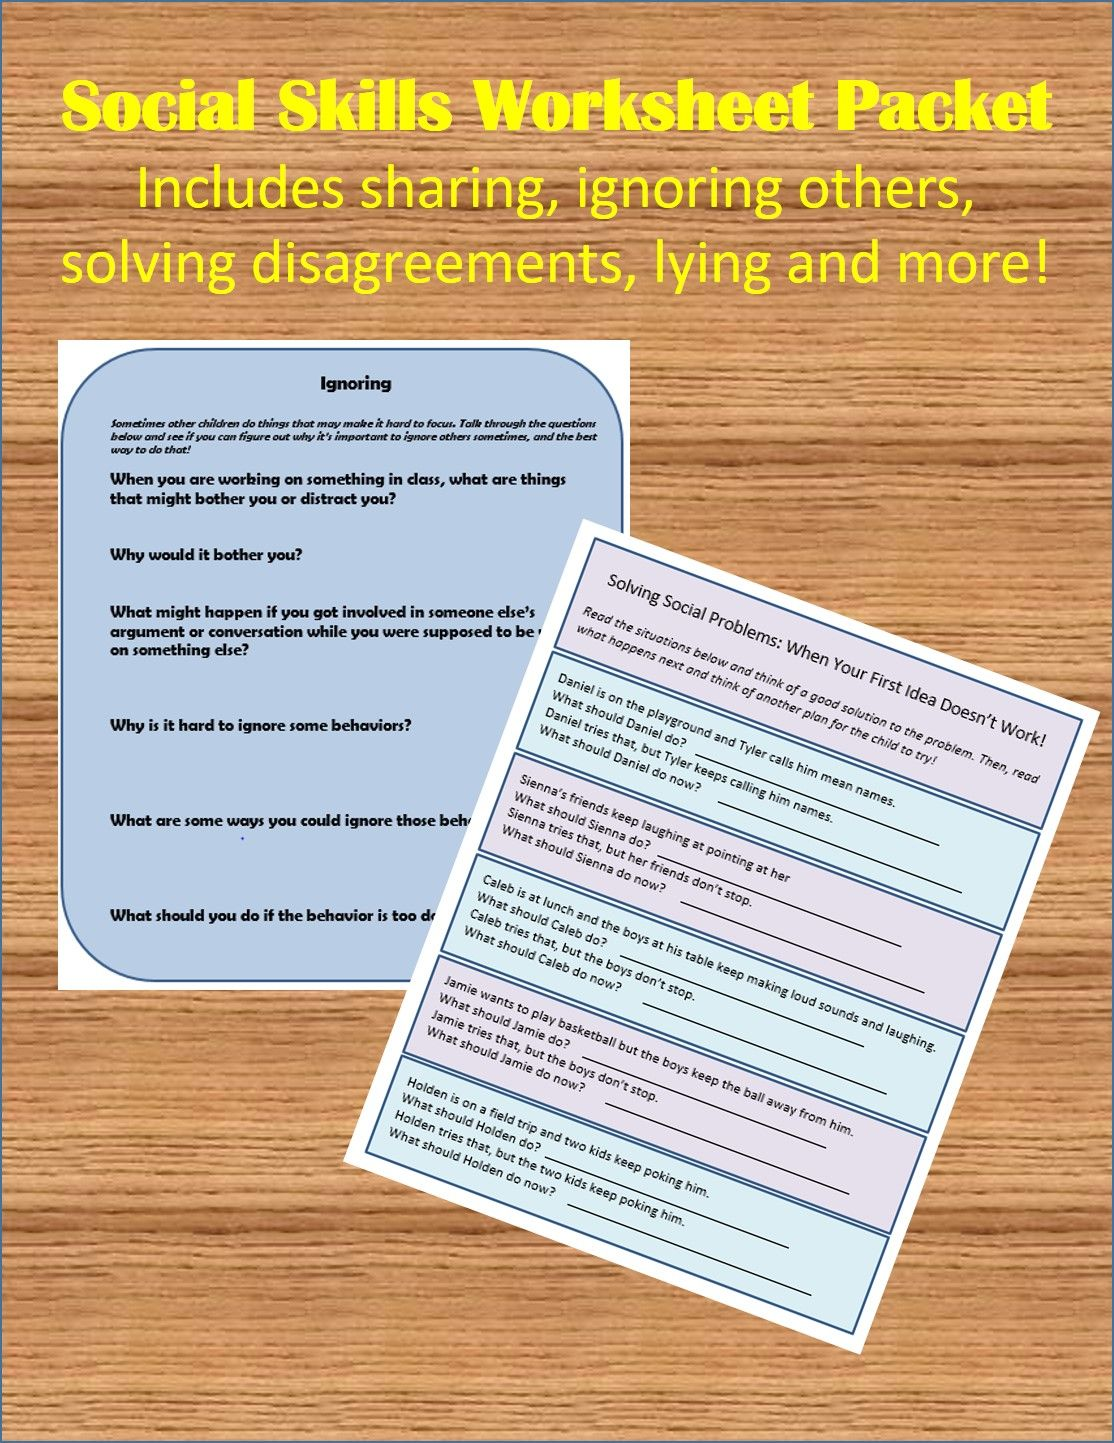 Social Skills Worksheet Packet